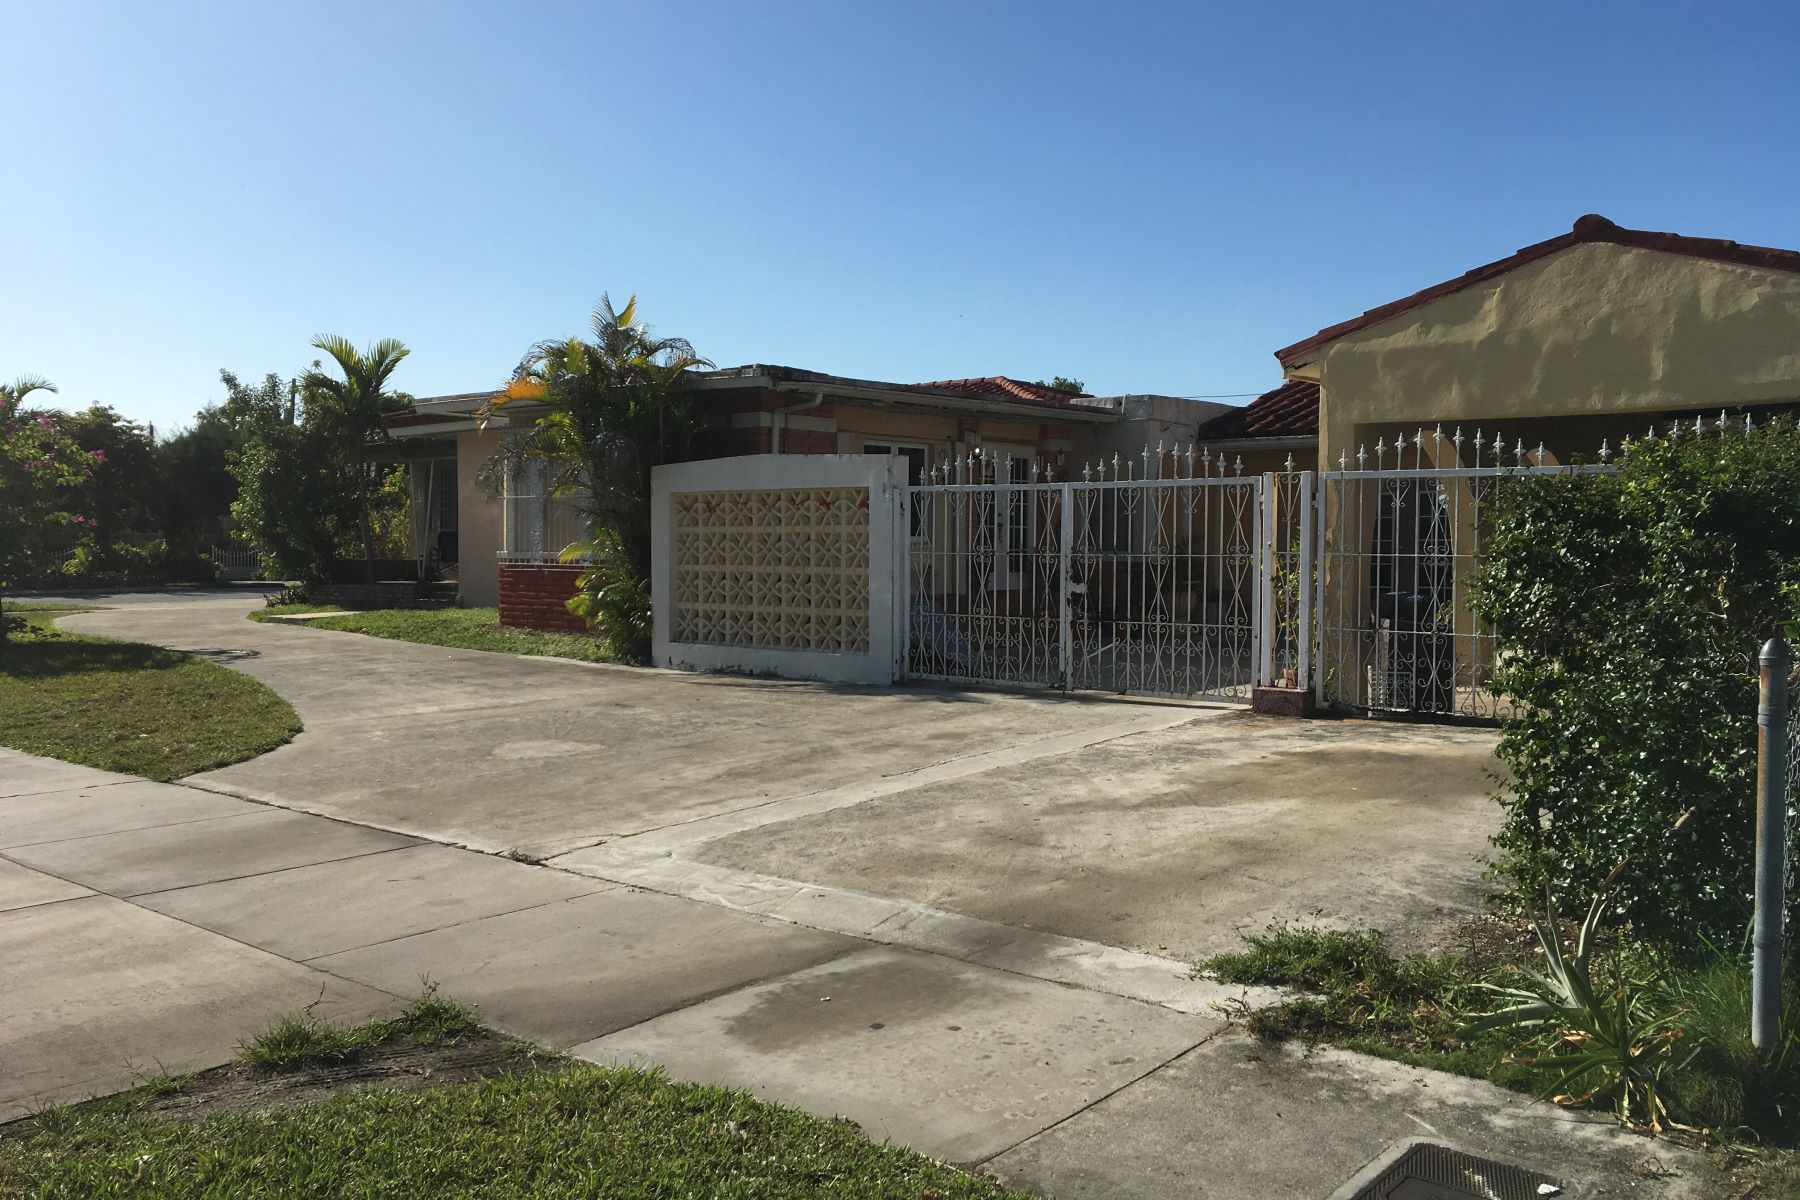 Single Family Home for Sale at 900 Sw 24th Rd Miami, Florida, 33129 United States